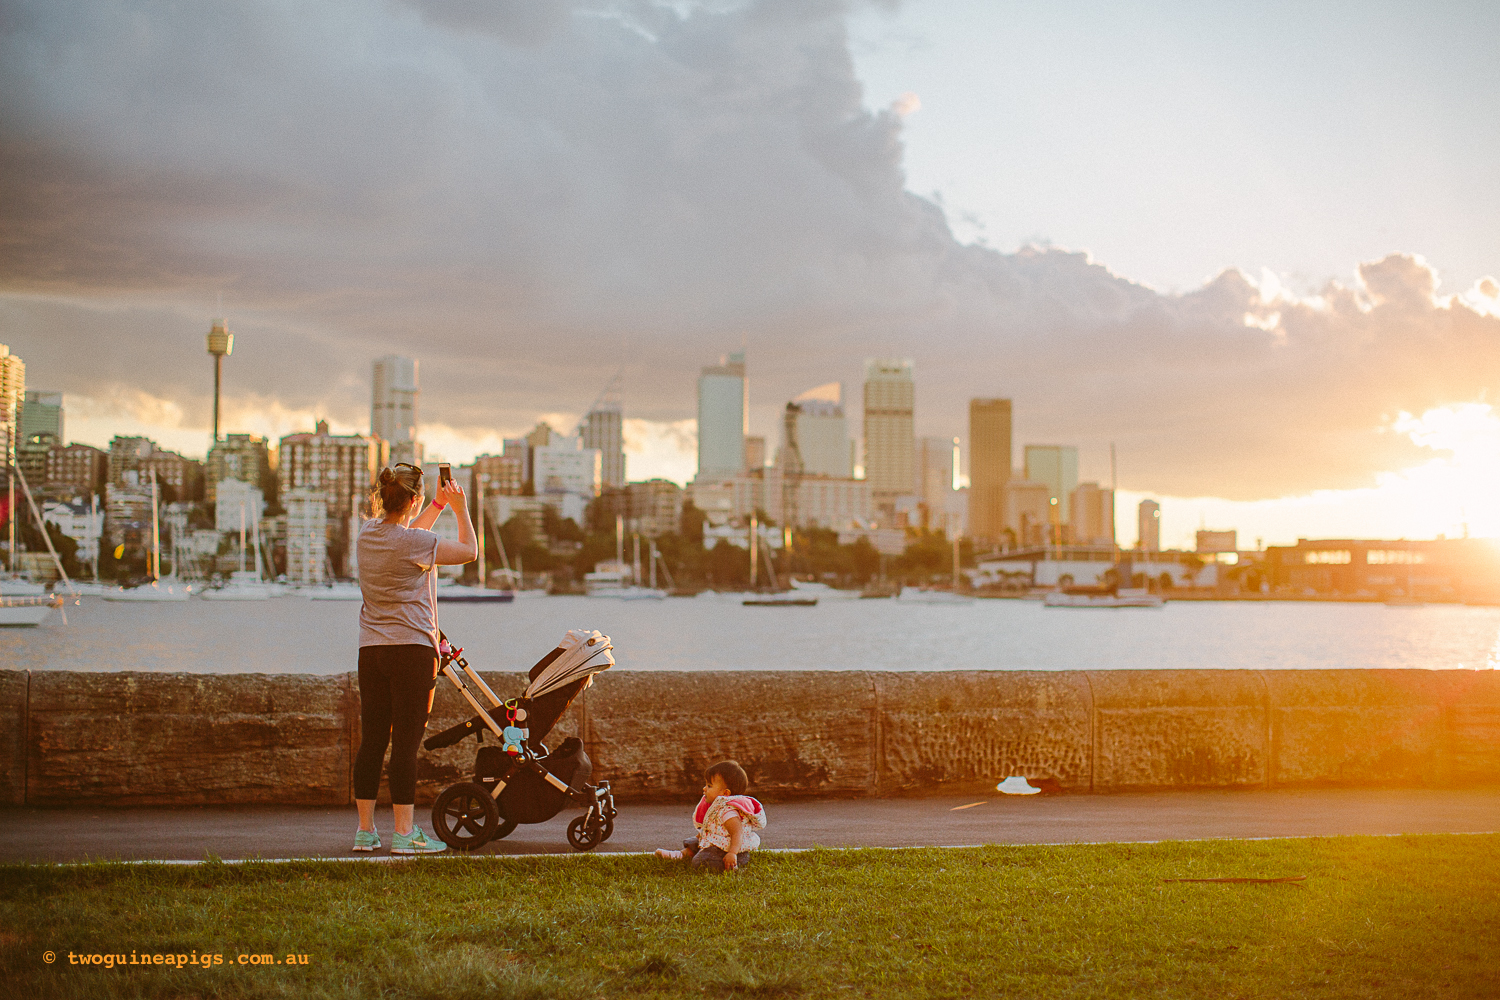 twoguineapigs_pet_photography_rushcutters_bay_potts_point_landscapes